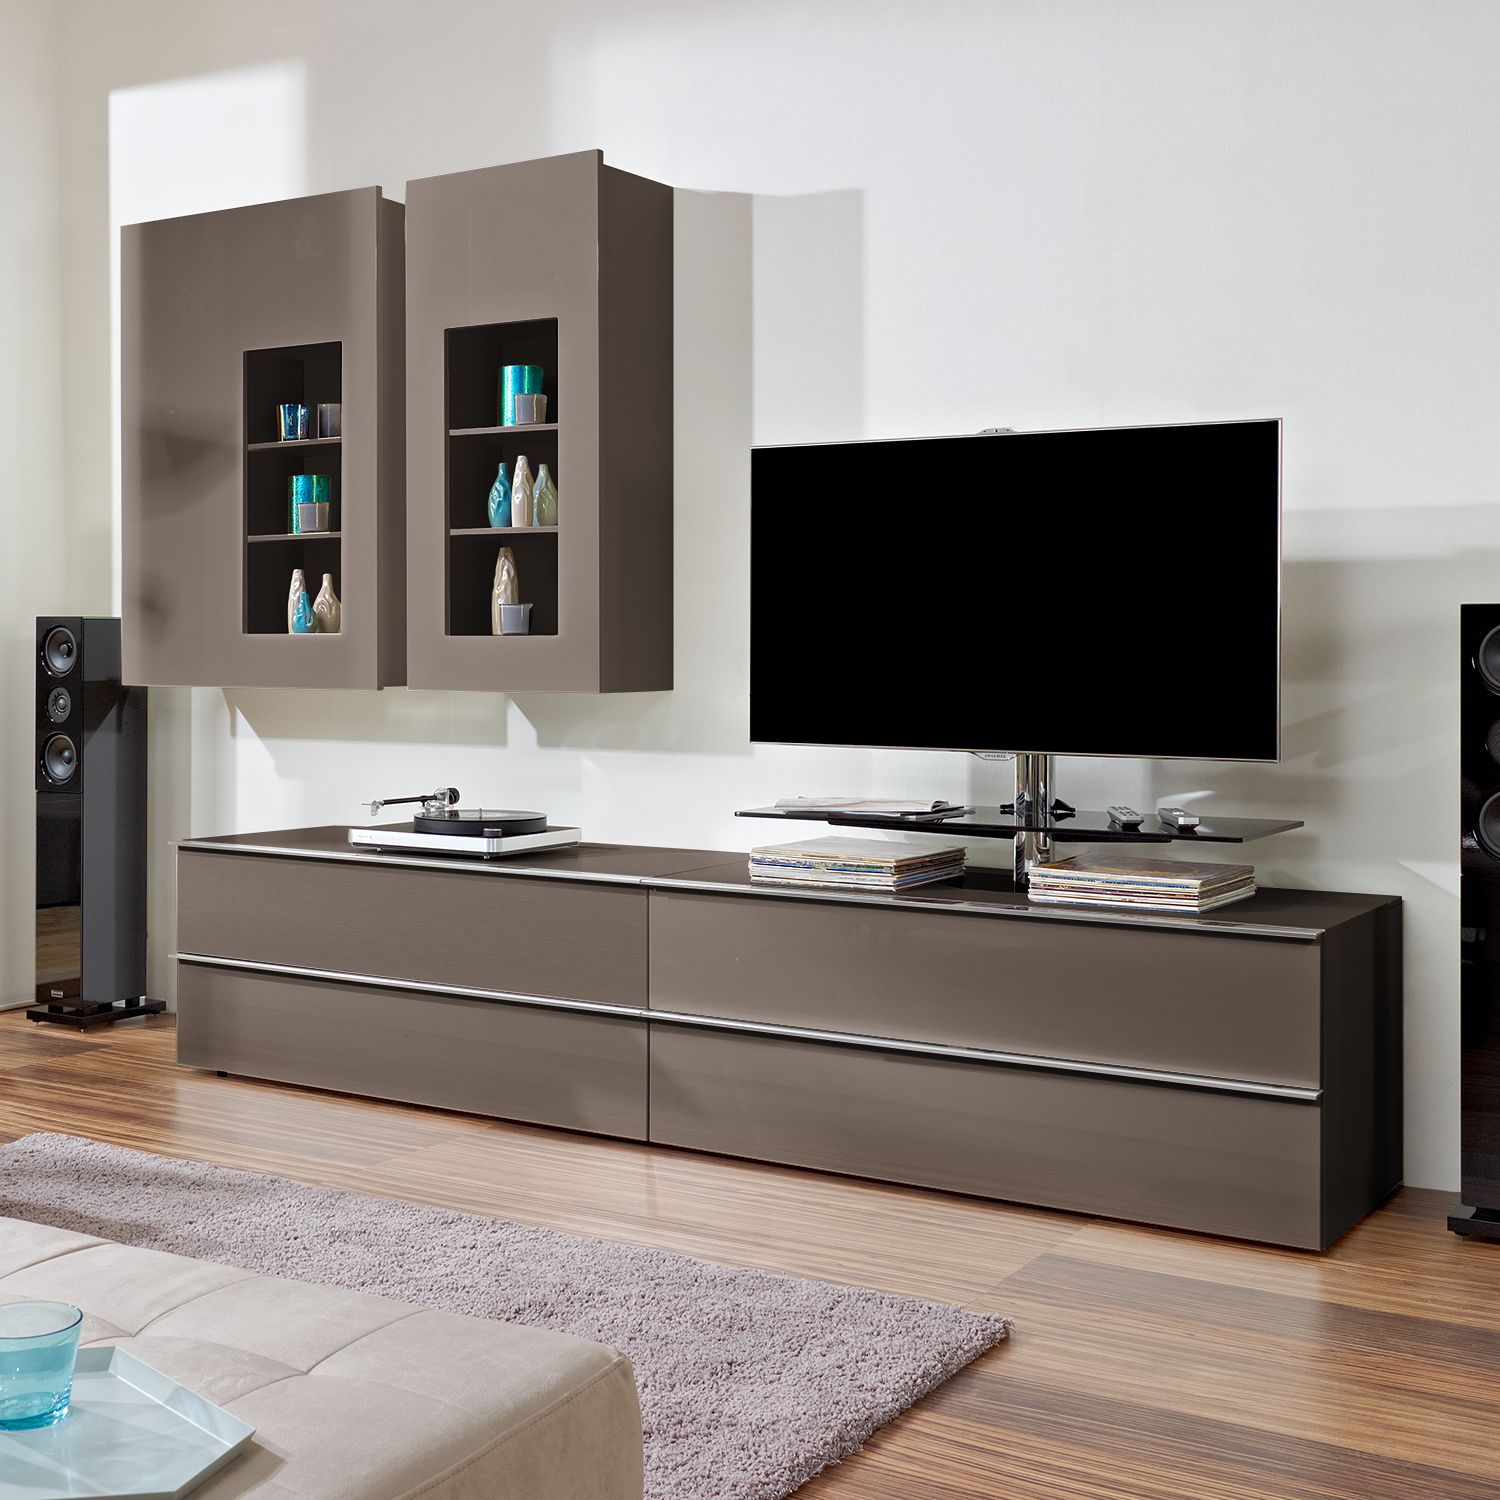 wohnwand ohne tv cheap schrankwand ohne tv wohnwand tlg schwarz plans with wohnwand ohne tv. Black Bedroom Furniture Sets. Home Design Ideas